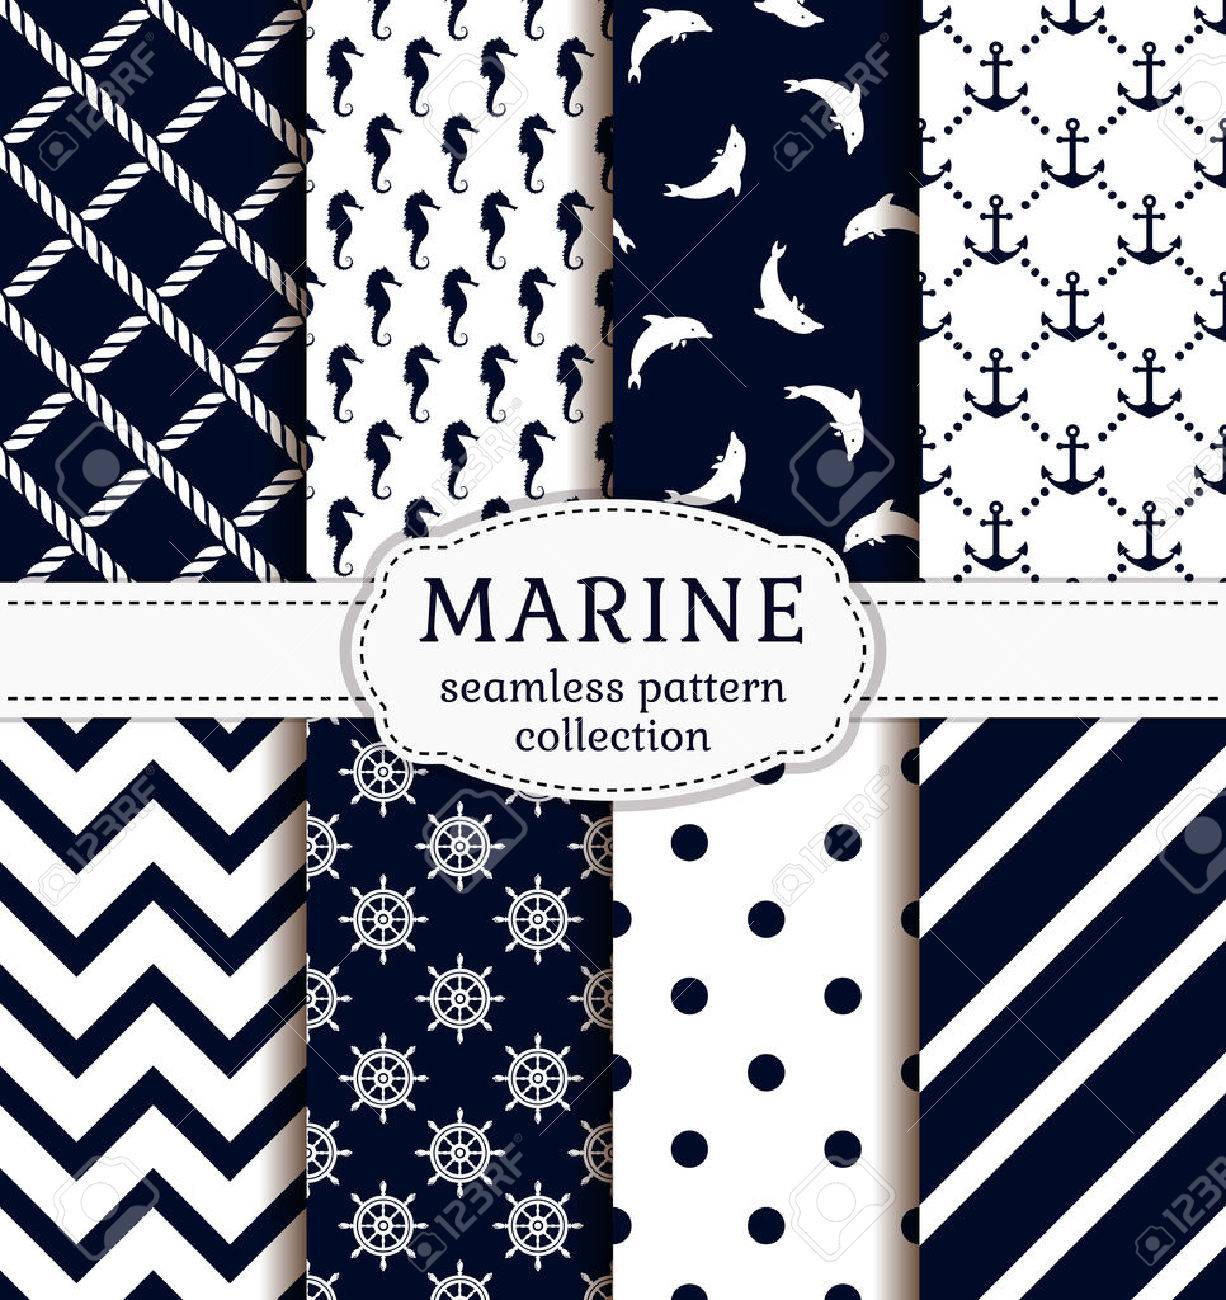 Sea and nautical backgrounds in white and dark blue colors. Sea theme. Seamless patterns collection. Vector set. - 51878135